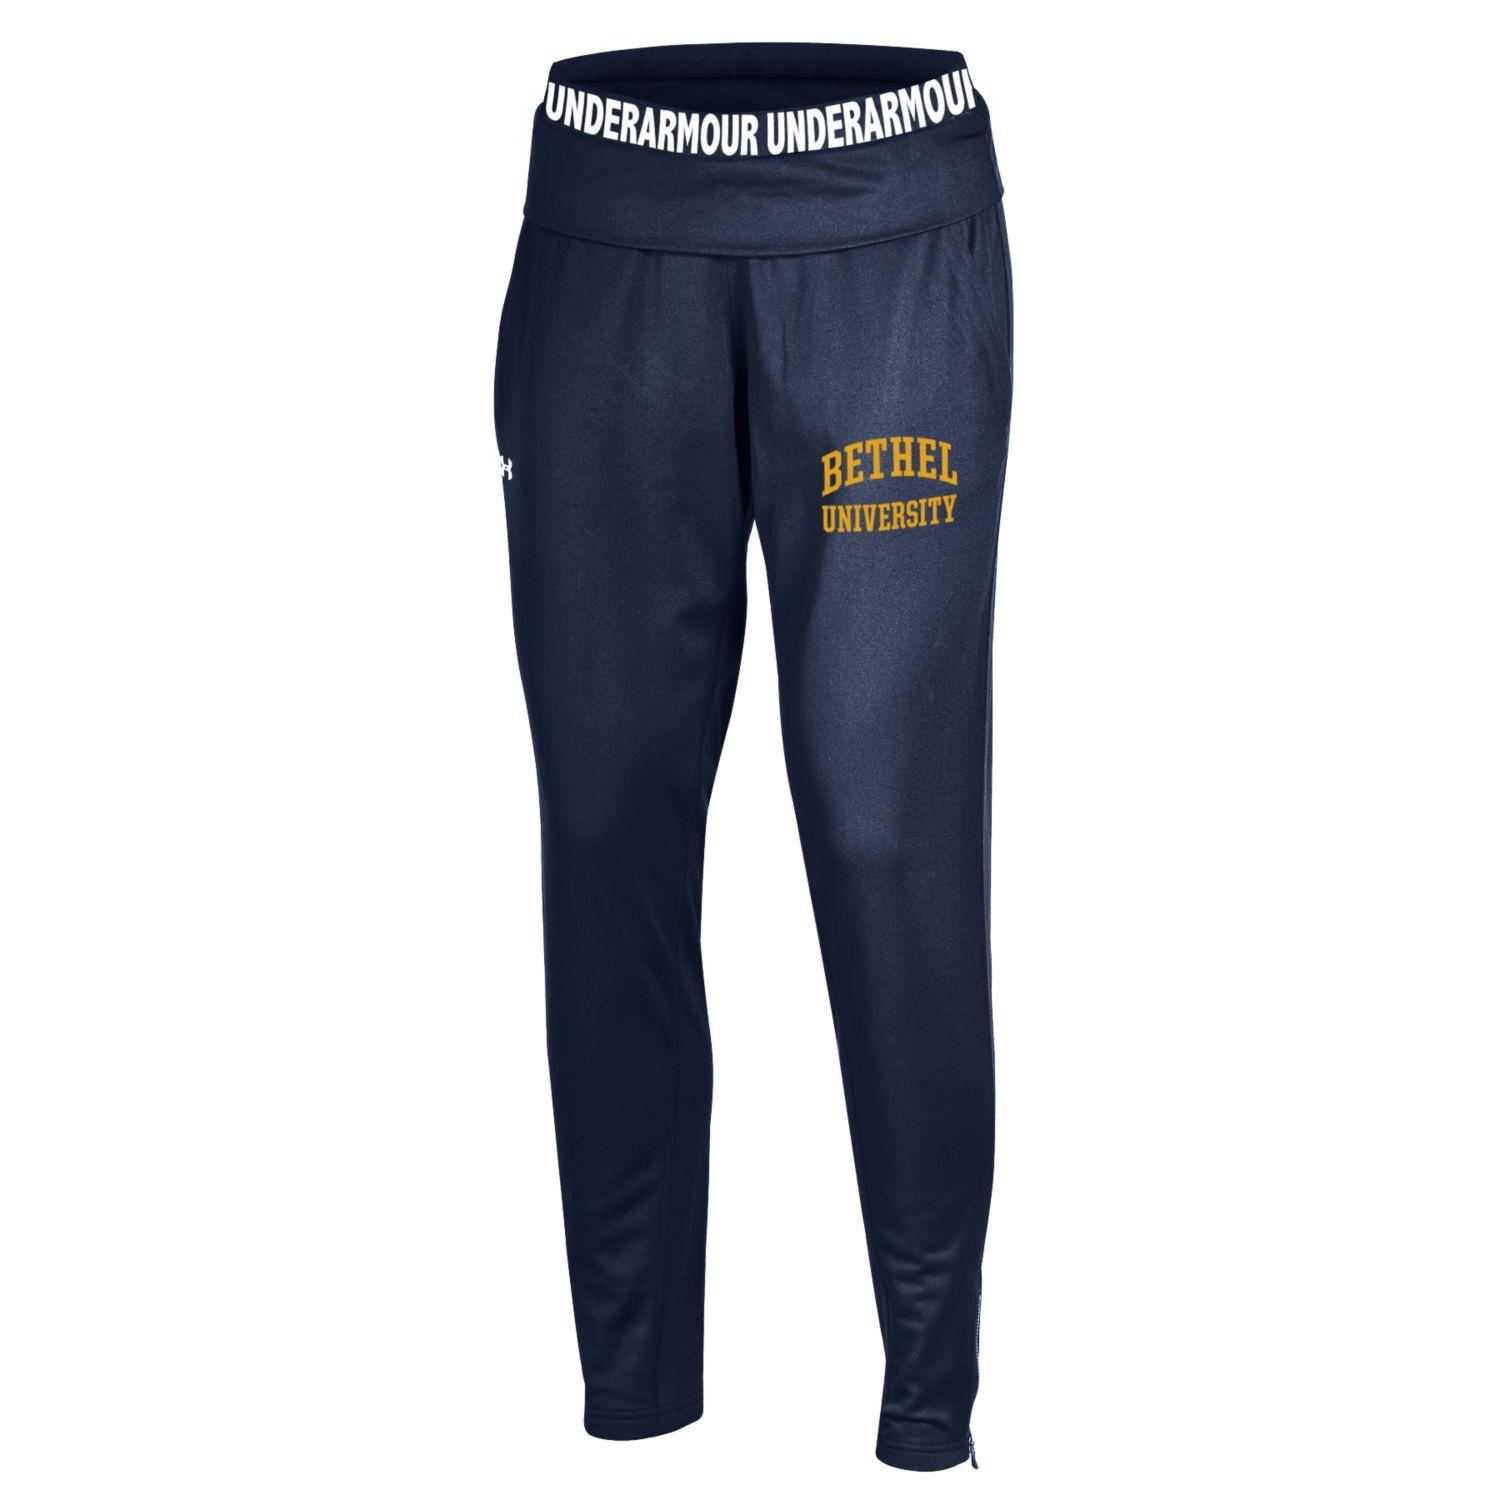 Under Armour Navy Athletic Pants